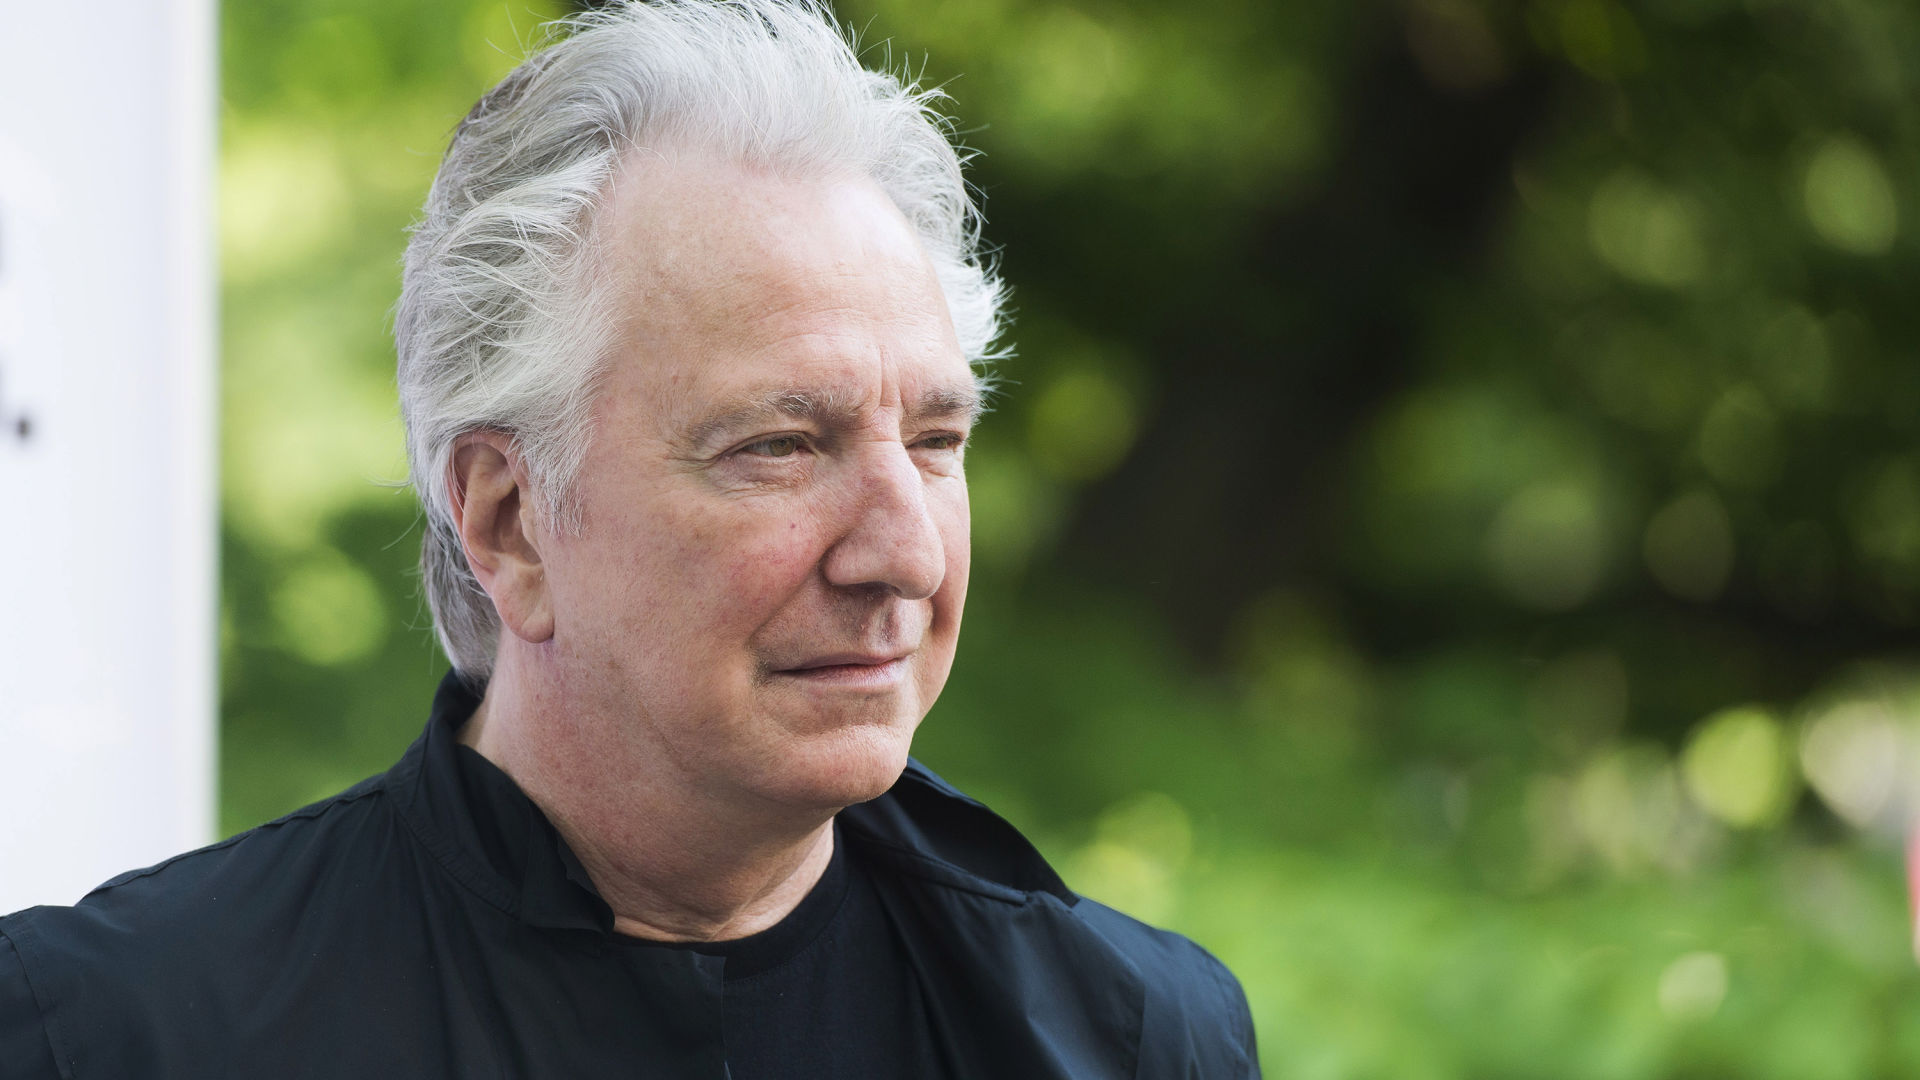 alan rickman desktop wallpaper 58112